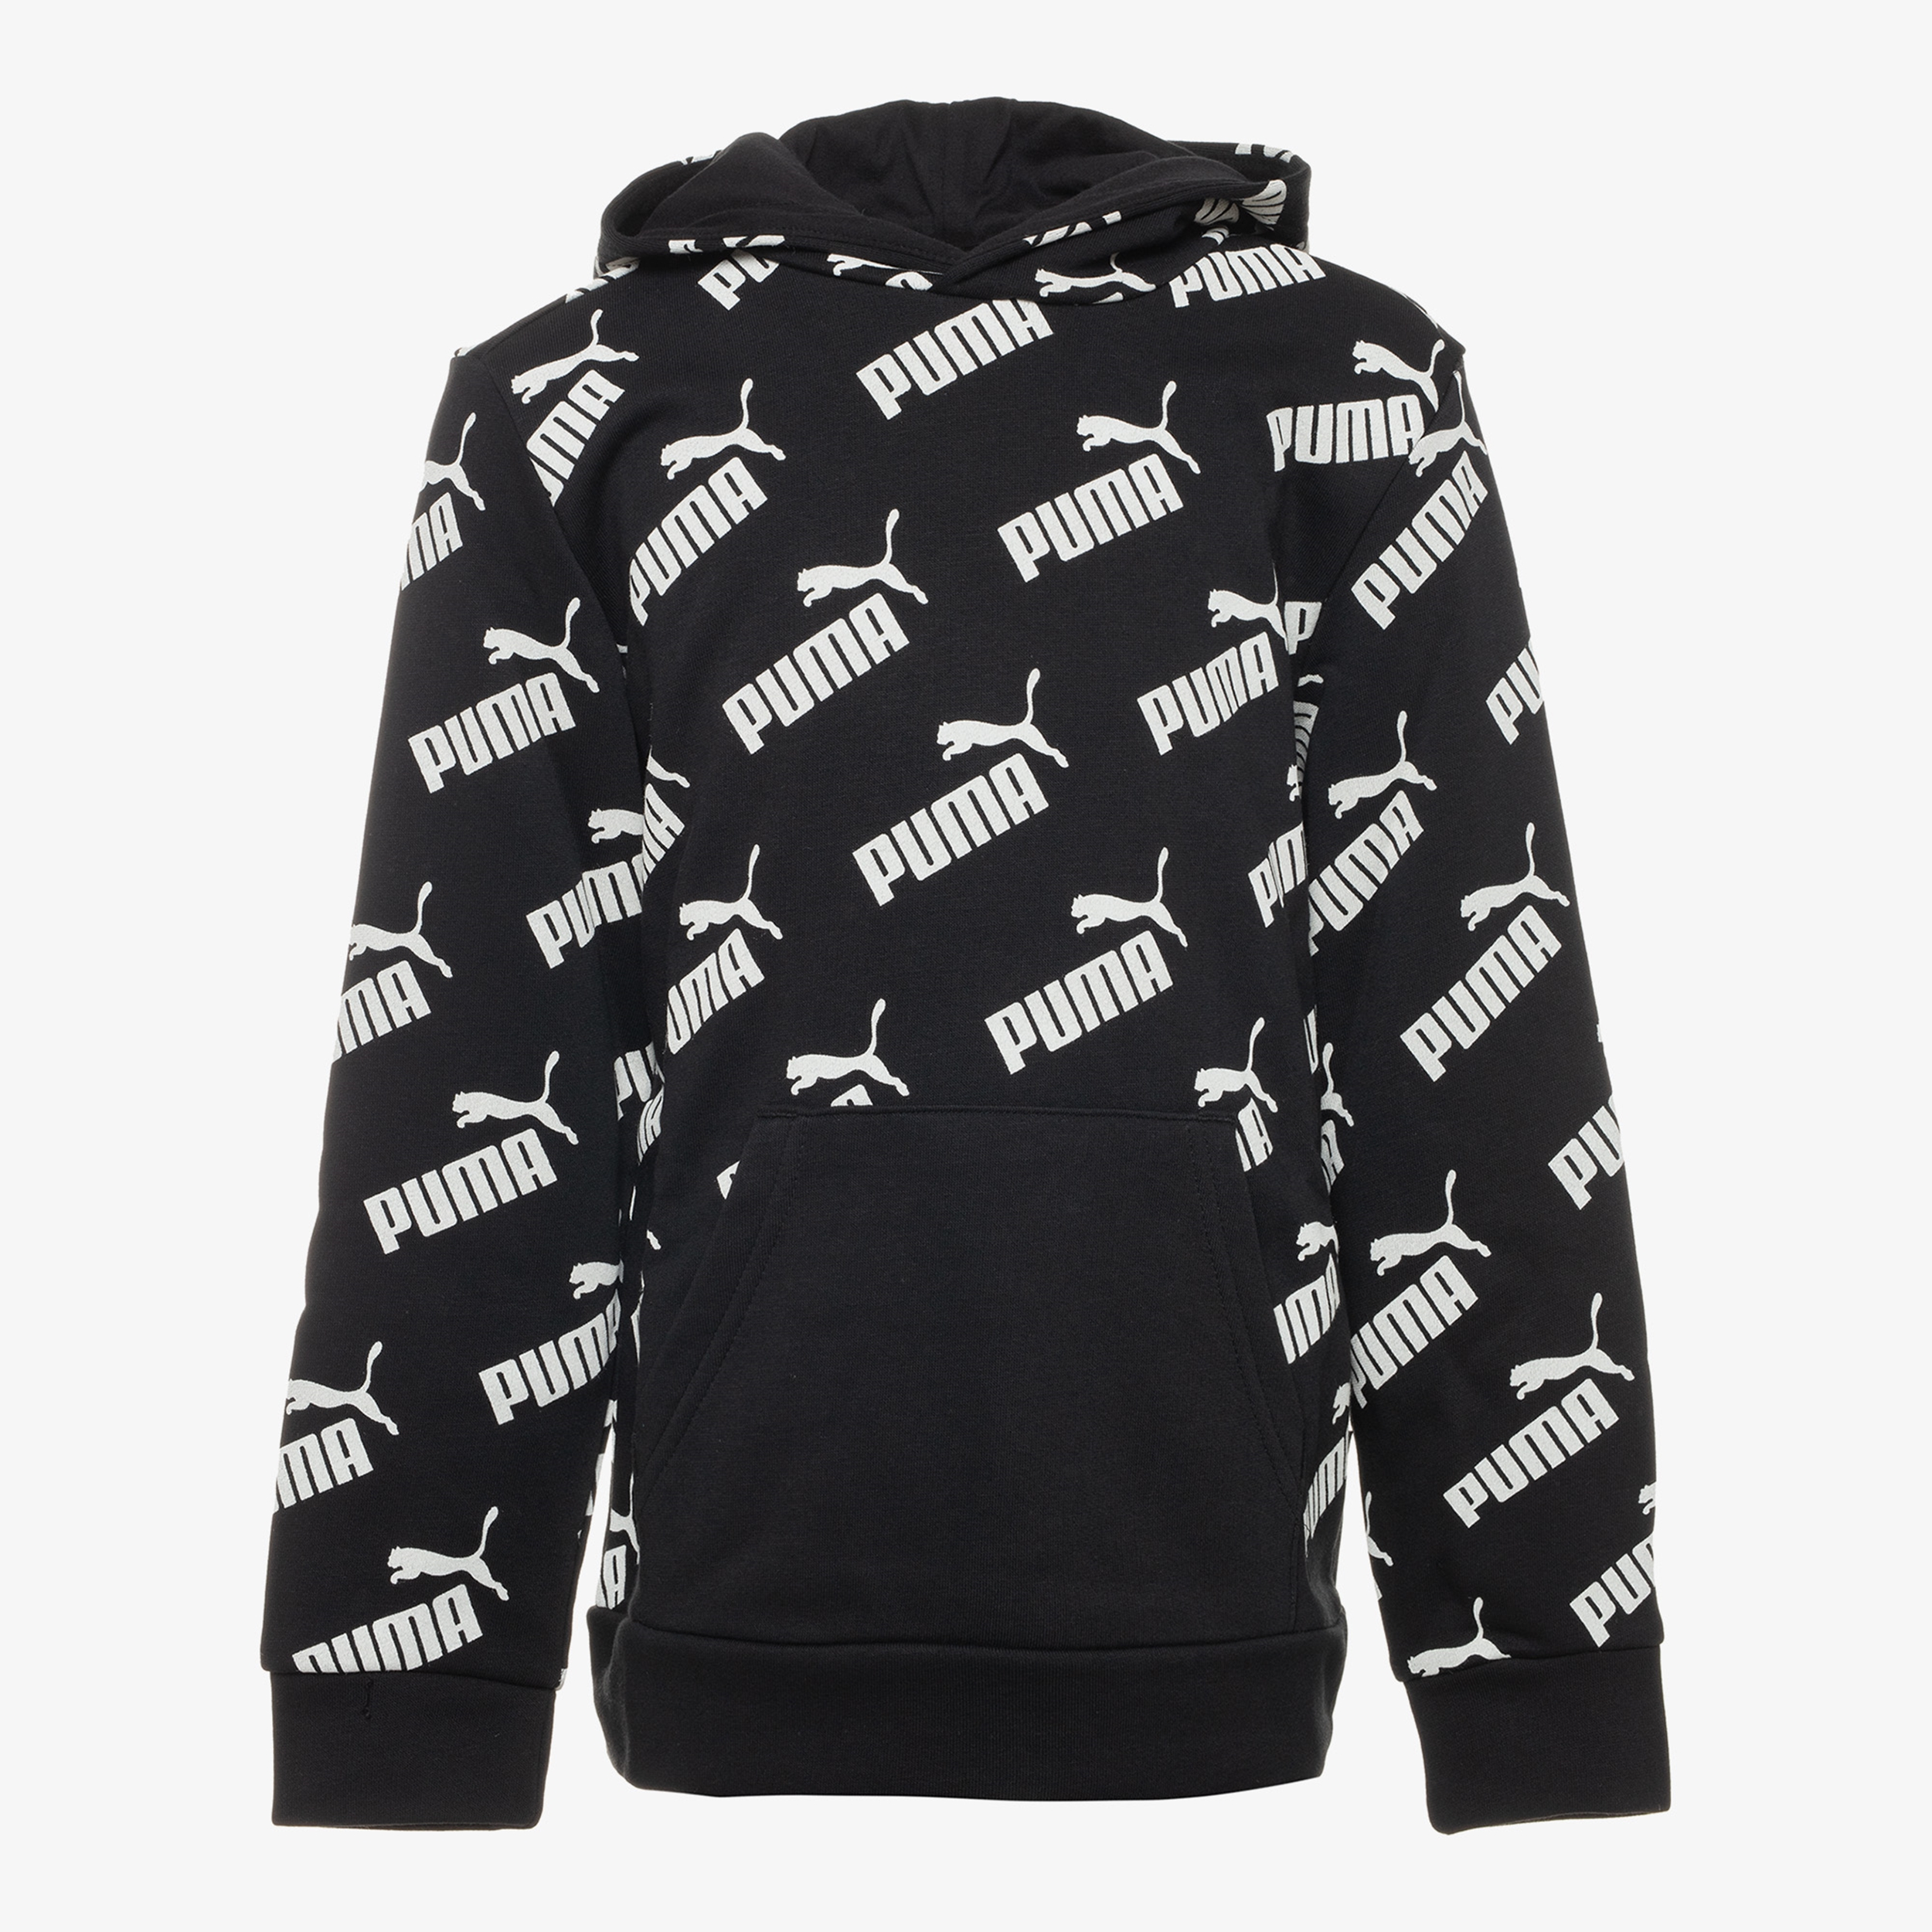 Puma Amplified Aop kinder sweater | Scapino.nl